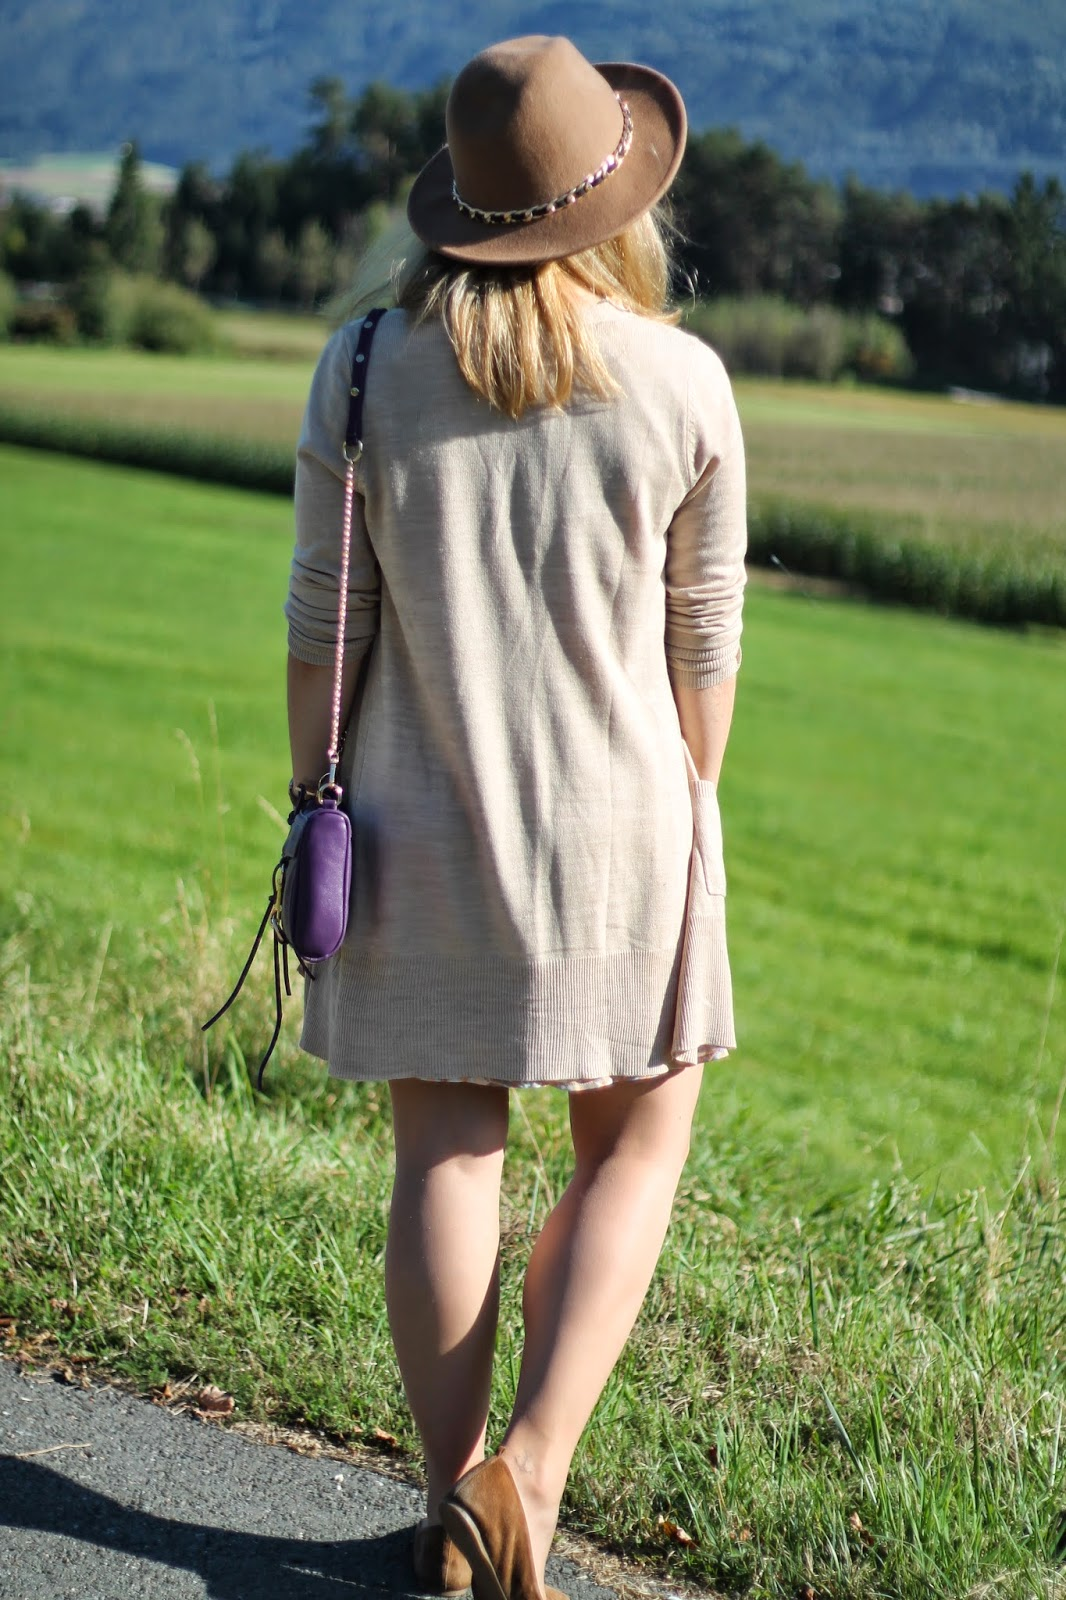 Fashionblogger Austria / Österreich / Deutsch / German / Kärnten / Carinthia / Klagenfurt / Köttmannsdorf / Spring Look / Classy / Edgy / Autumn / Autumn Style 2014 / Autumn Look / Fashionista Look / How to Style 7 / Sommerkleid im Herbst / Summer dress in Autumn / Zara Beige Hat / Forever 21 / Beige Cardigan H&M / J. Crew Flats / Rebecca Minkoff Look a like bag oasap / Ray Ban sunglasses Aviator /